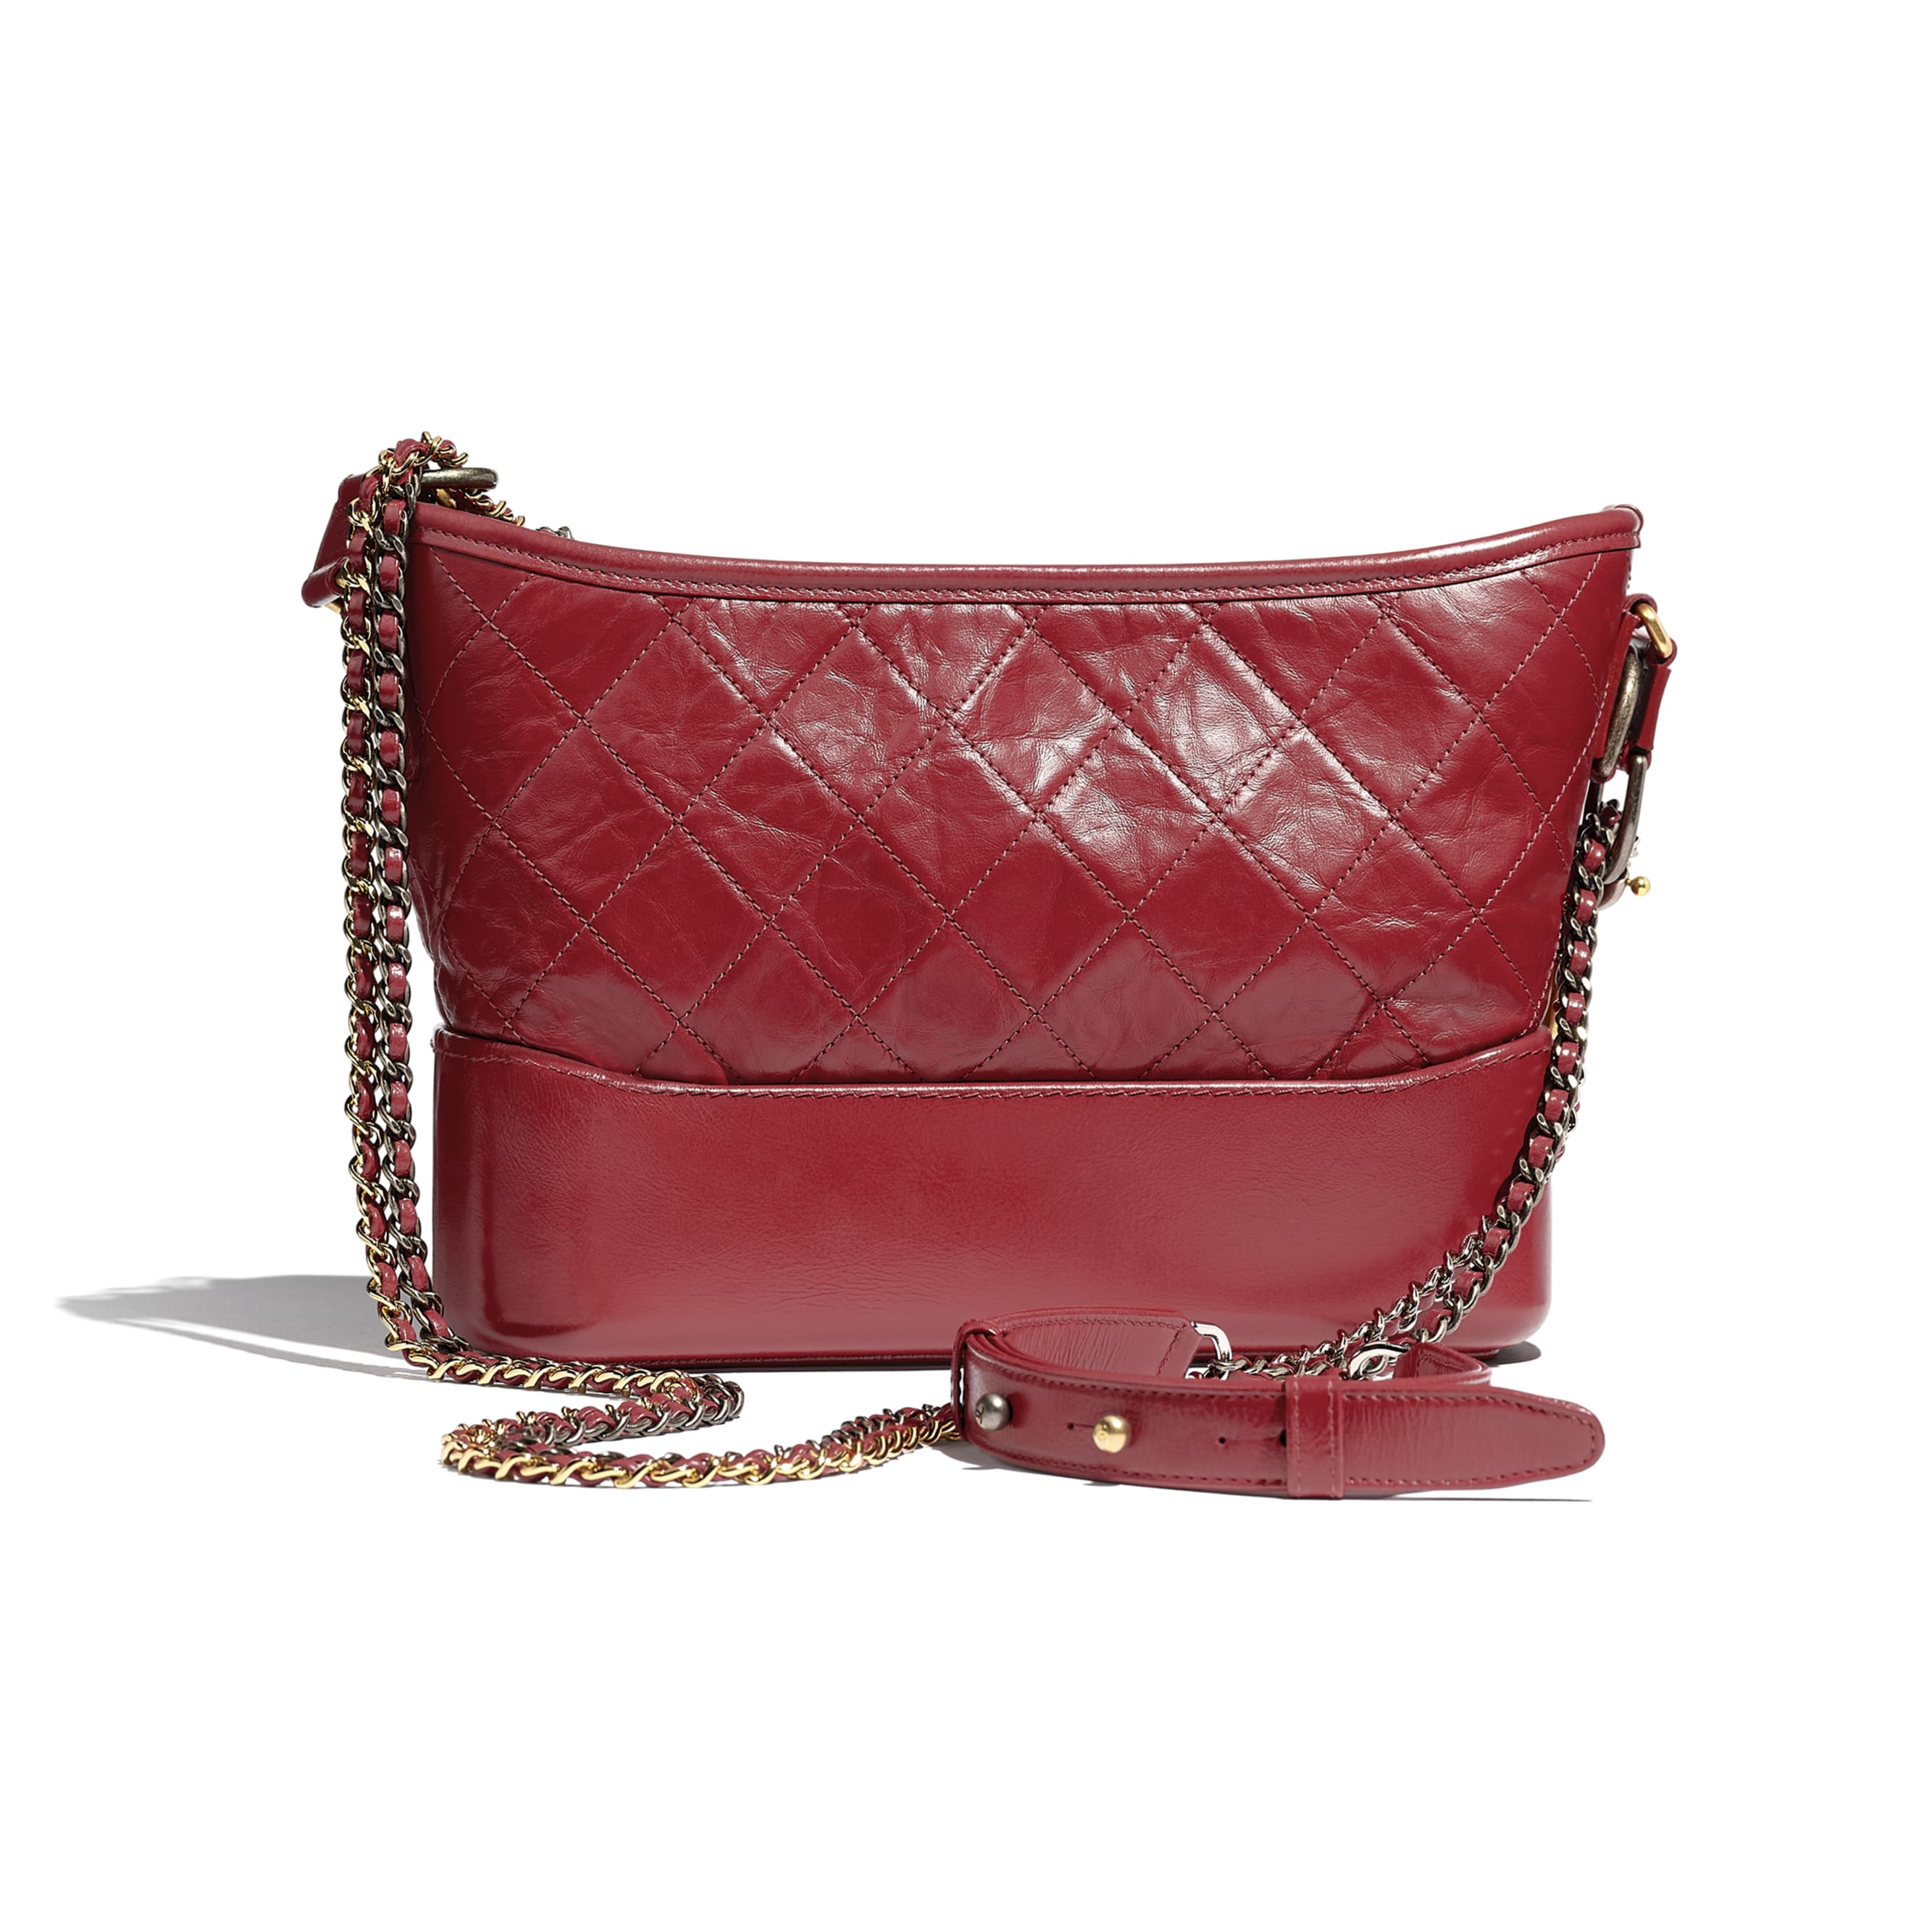 CHANEL'S GABRIELLE Hobo Bag - Red - Aged Calfskin, Smooth Calfskin, Gold-Tone & Silver-Tone Metal - CHANEL - Alternative view - see standard sized version